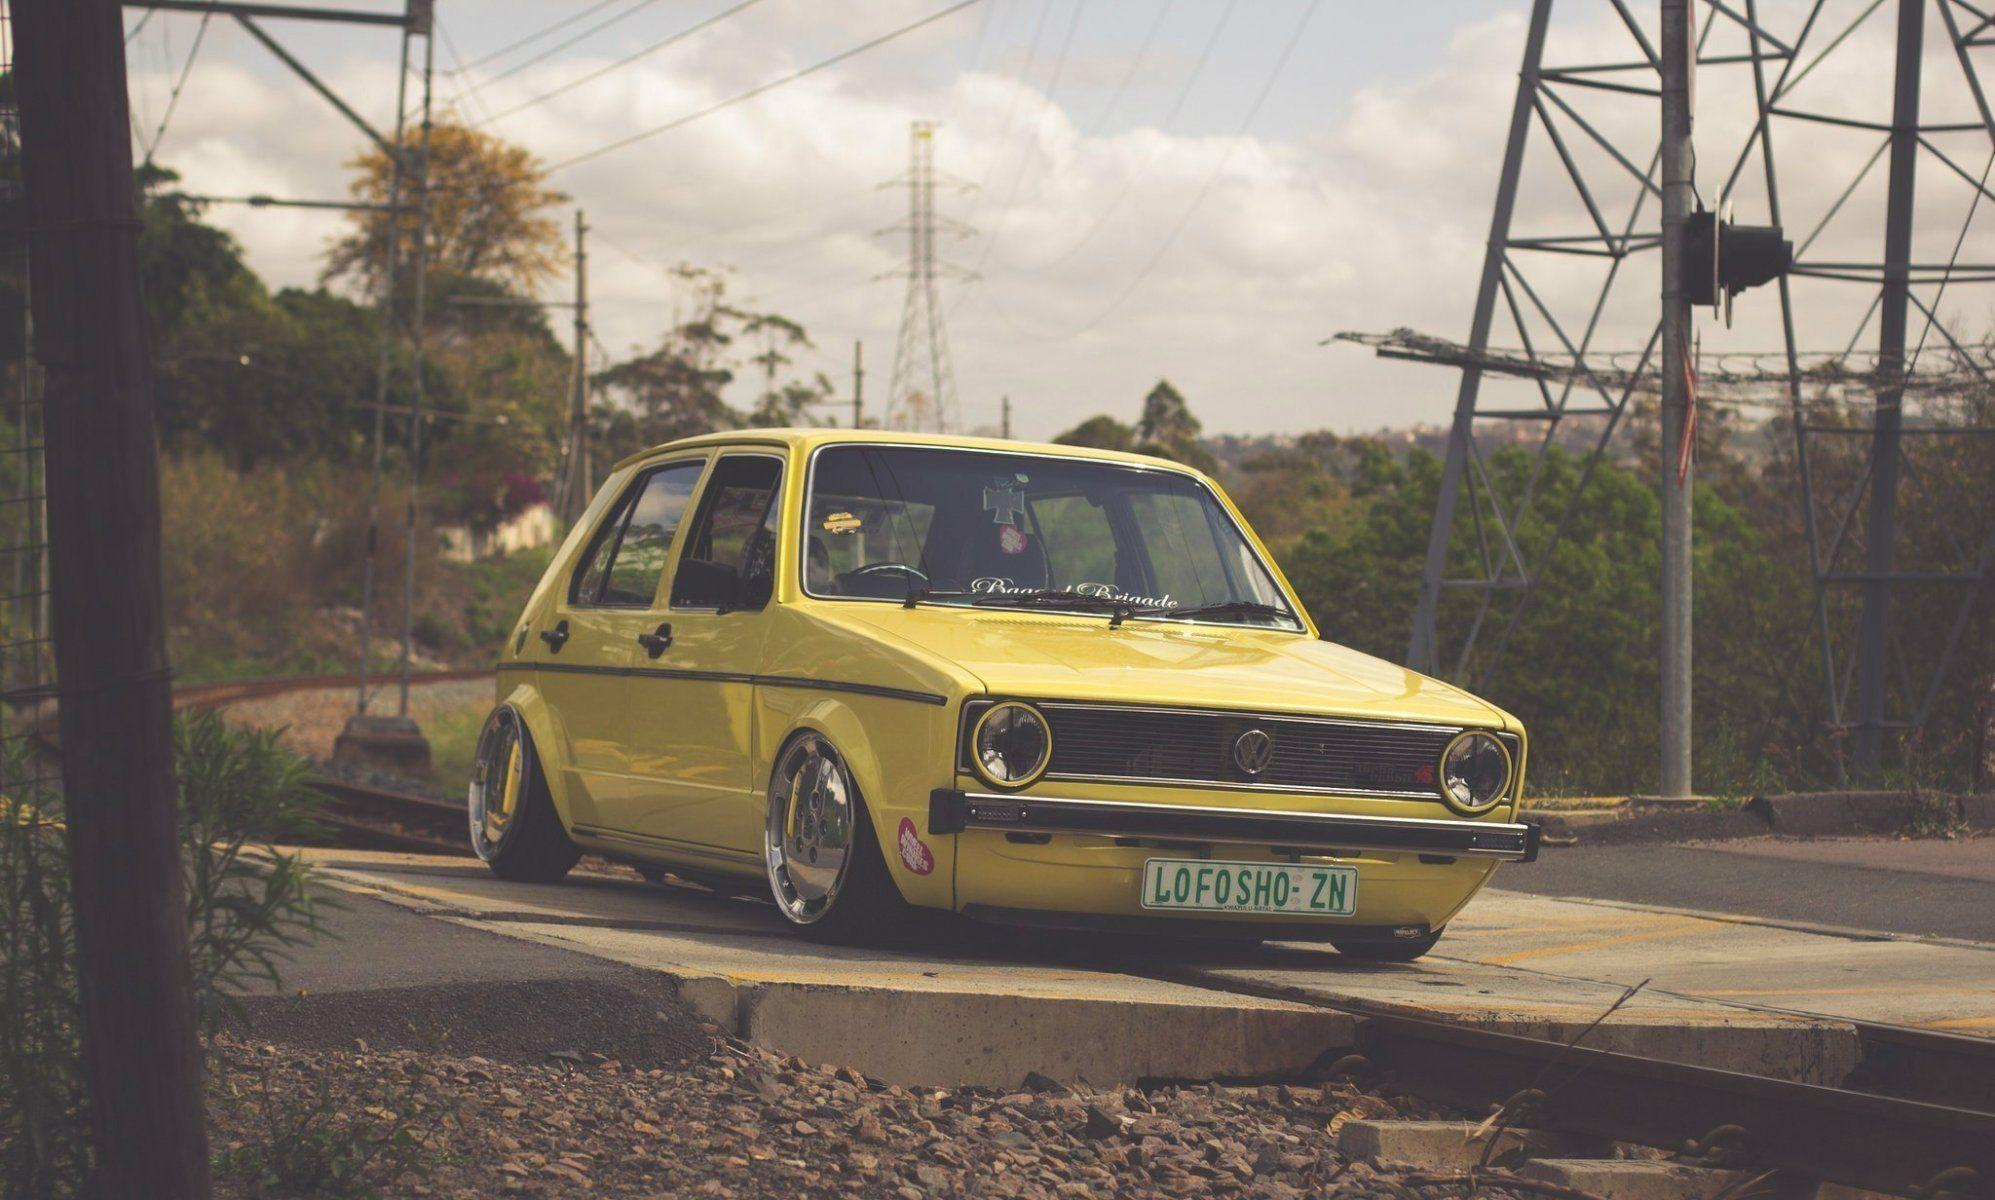 Best Wallpaper Gallery With Pc Wallpaper Volkswagen: Golf Mk1 Wallpapers